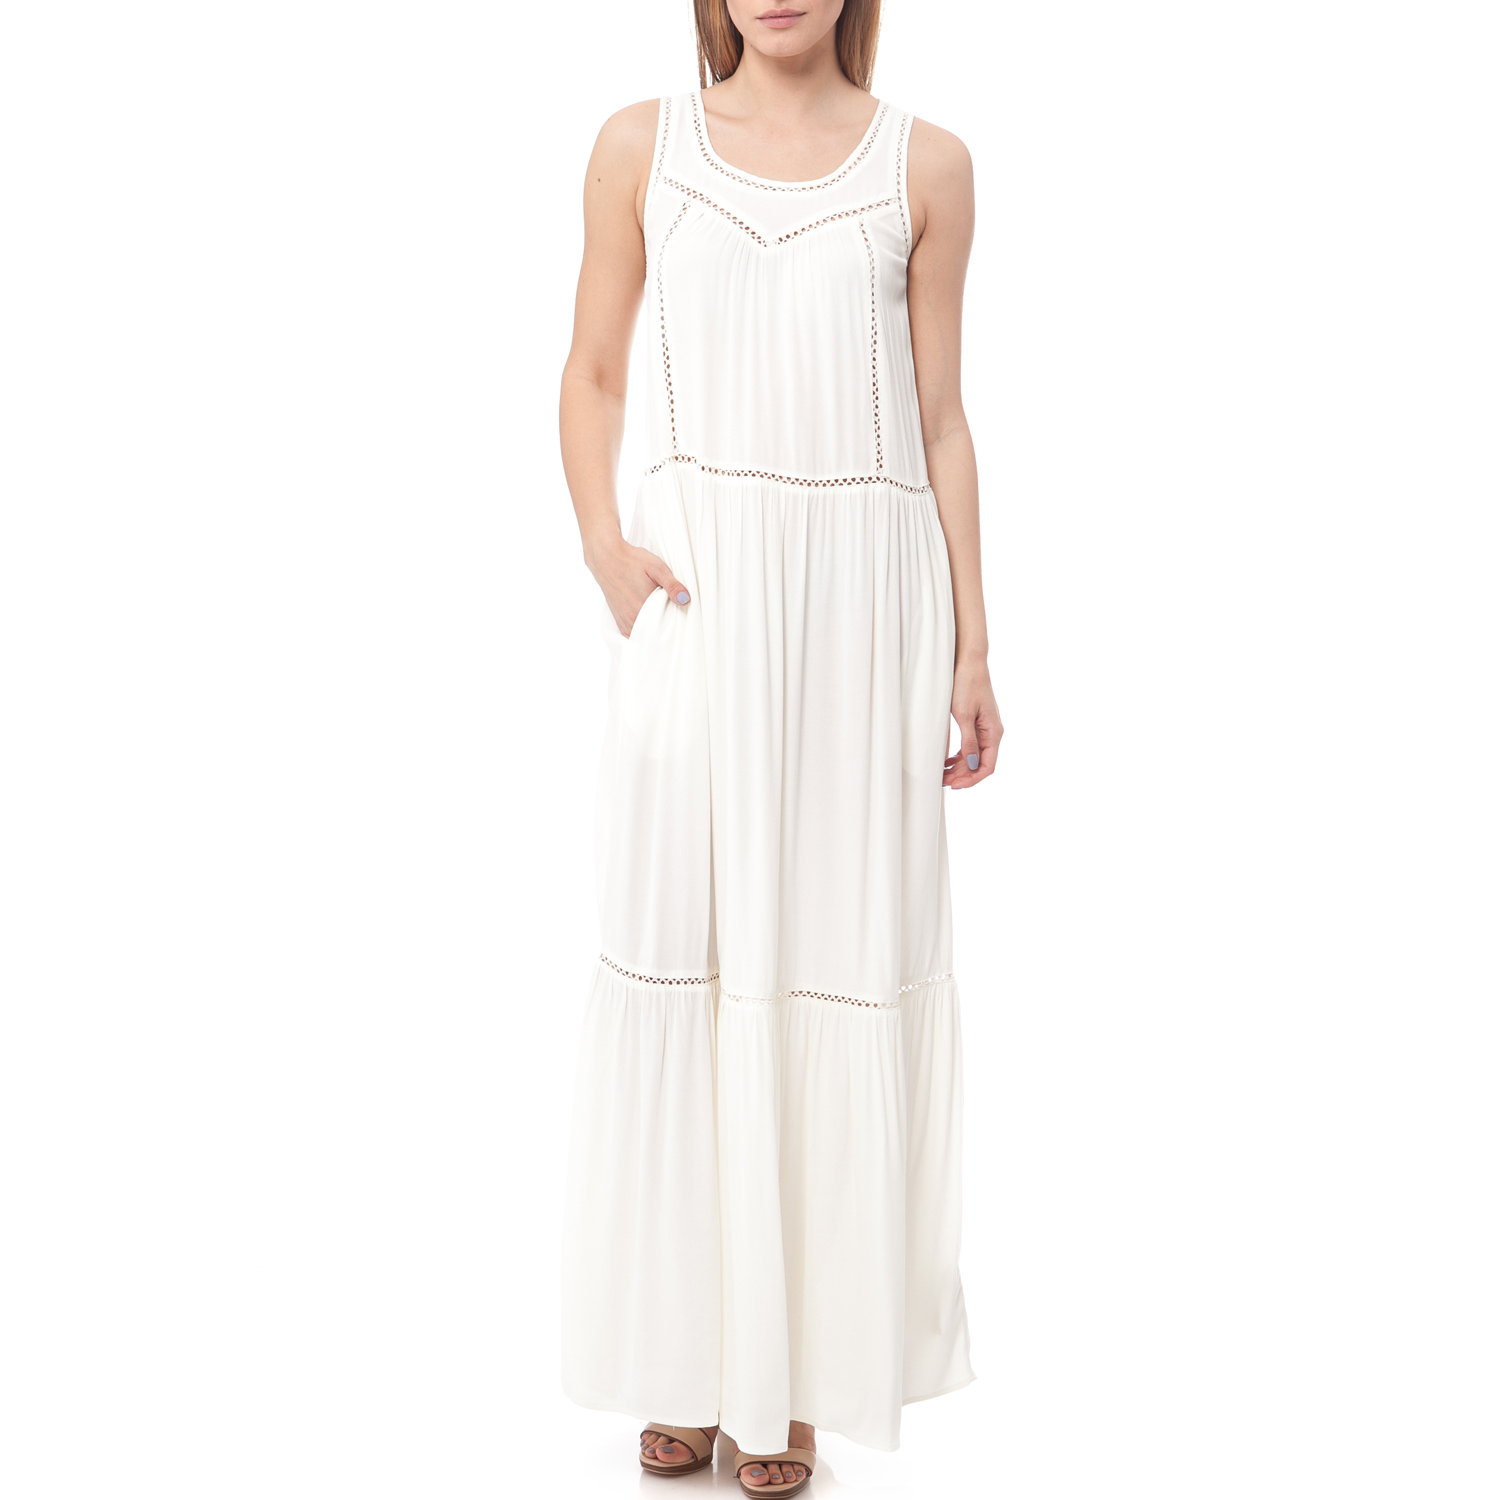 SCOTCH   SODA - Maxi φόρεμα Maison Scotch λευκό 8fcd9760e4f